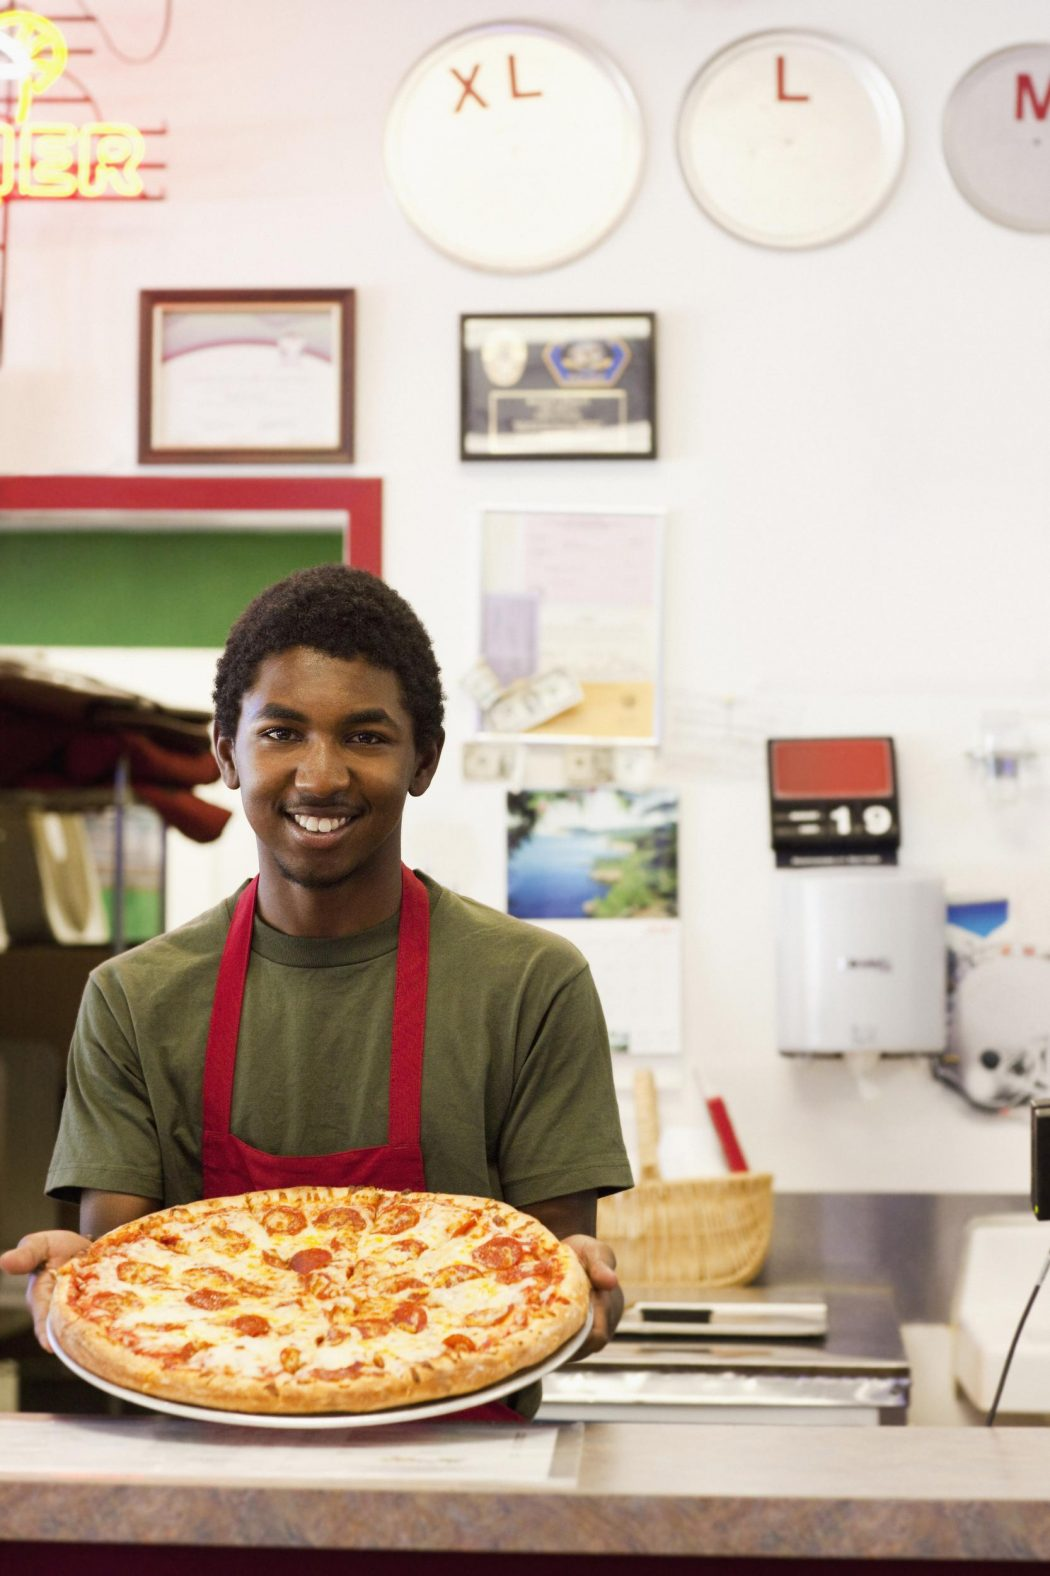 Black teenager working in pizza restaurant